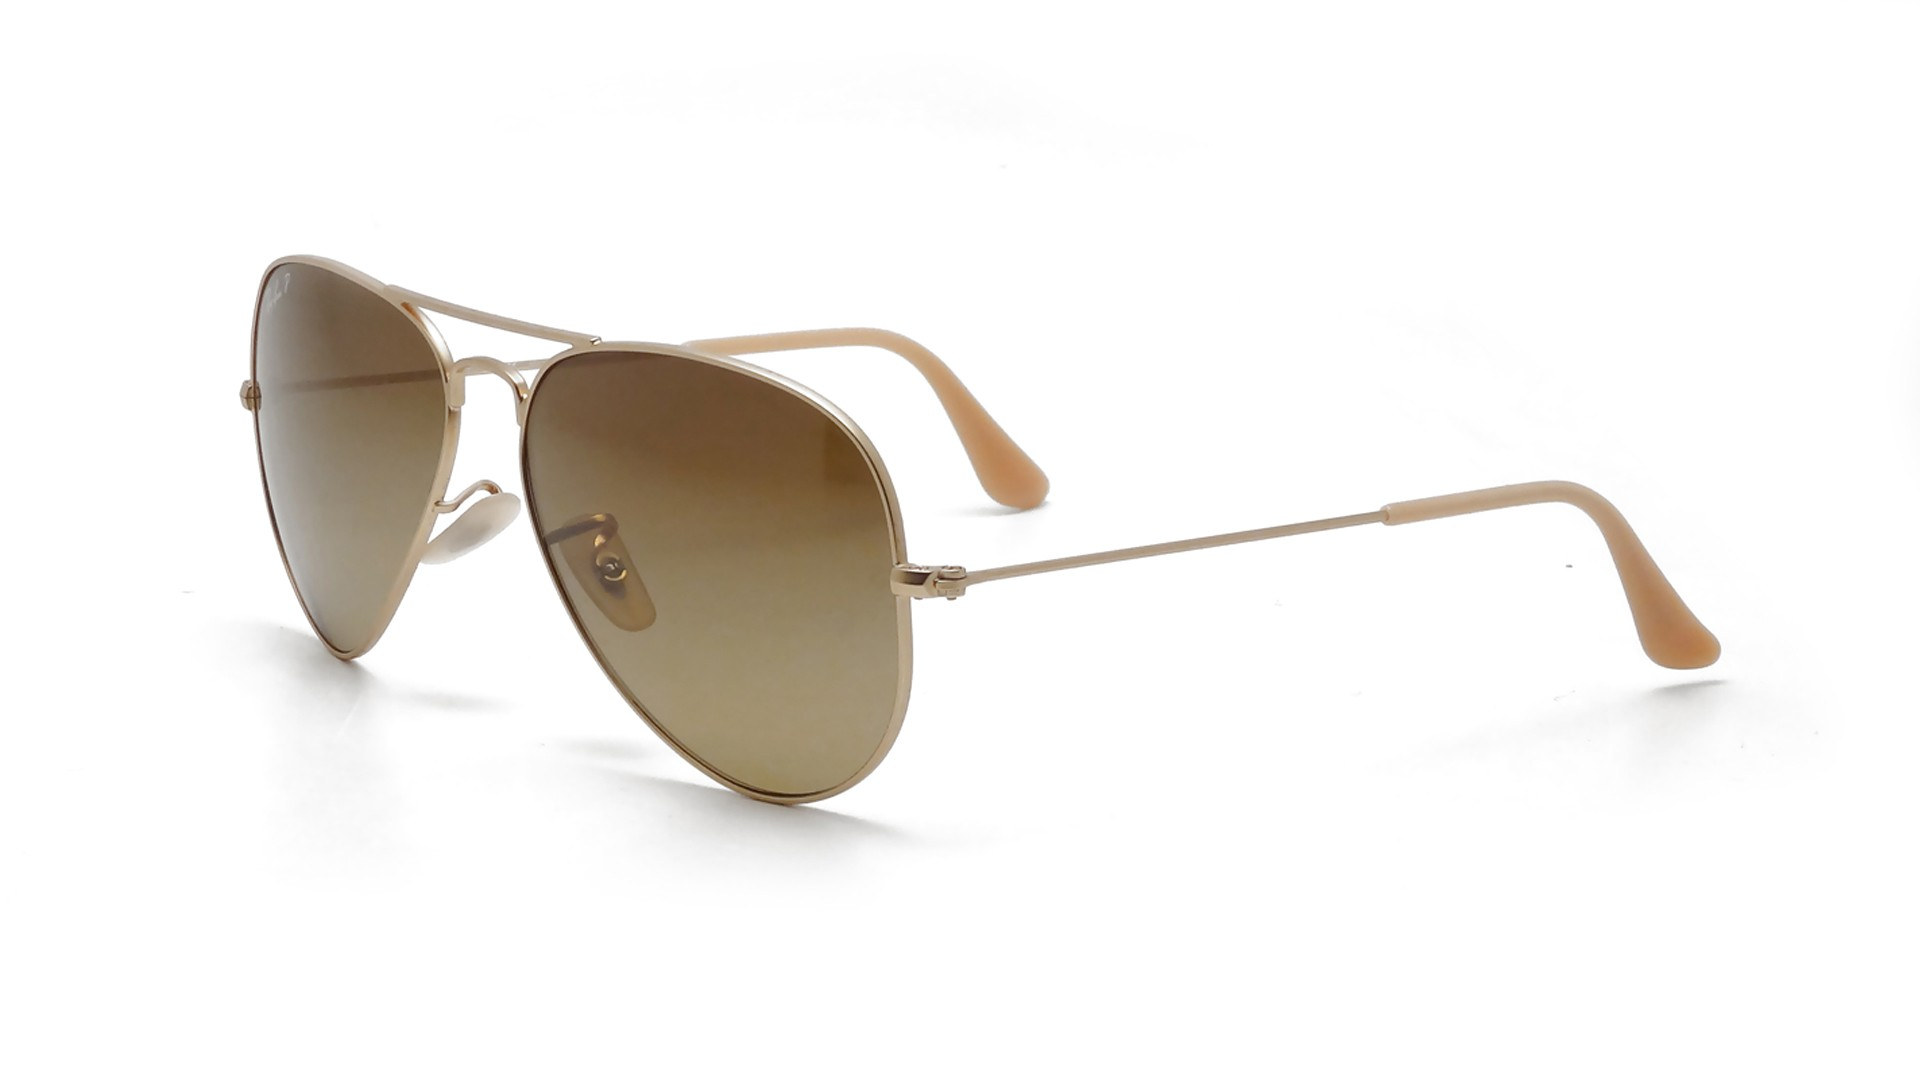 Sunglasses Ray-Ban Aviator Large Metal Gold RB3025 112 M2 58-14 Large  Polarized Gradient 27a19533eb45